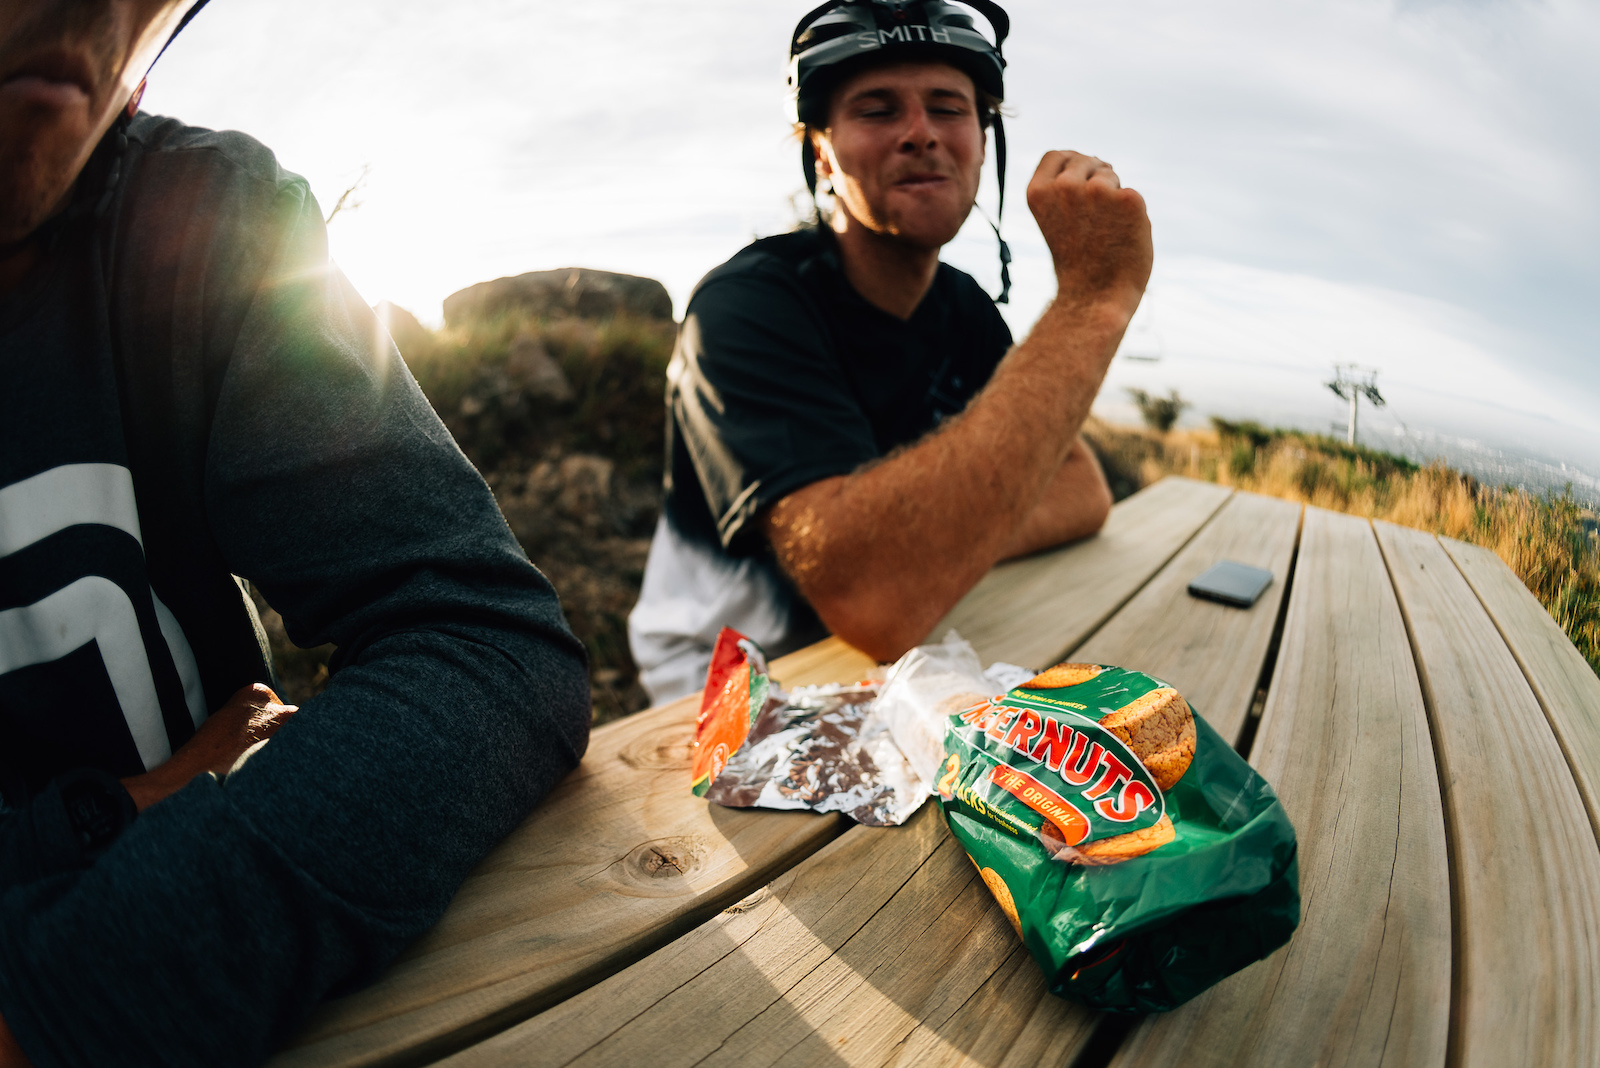 A well situated picnic table at the top provides the best stop for a bikkie with a view.